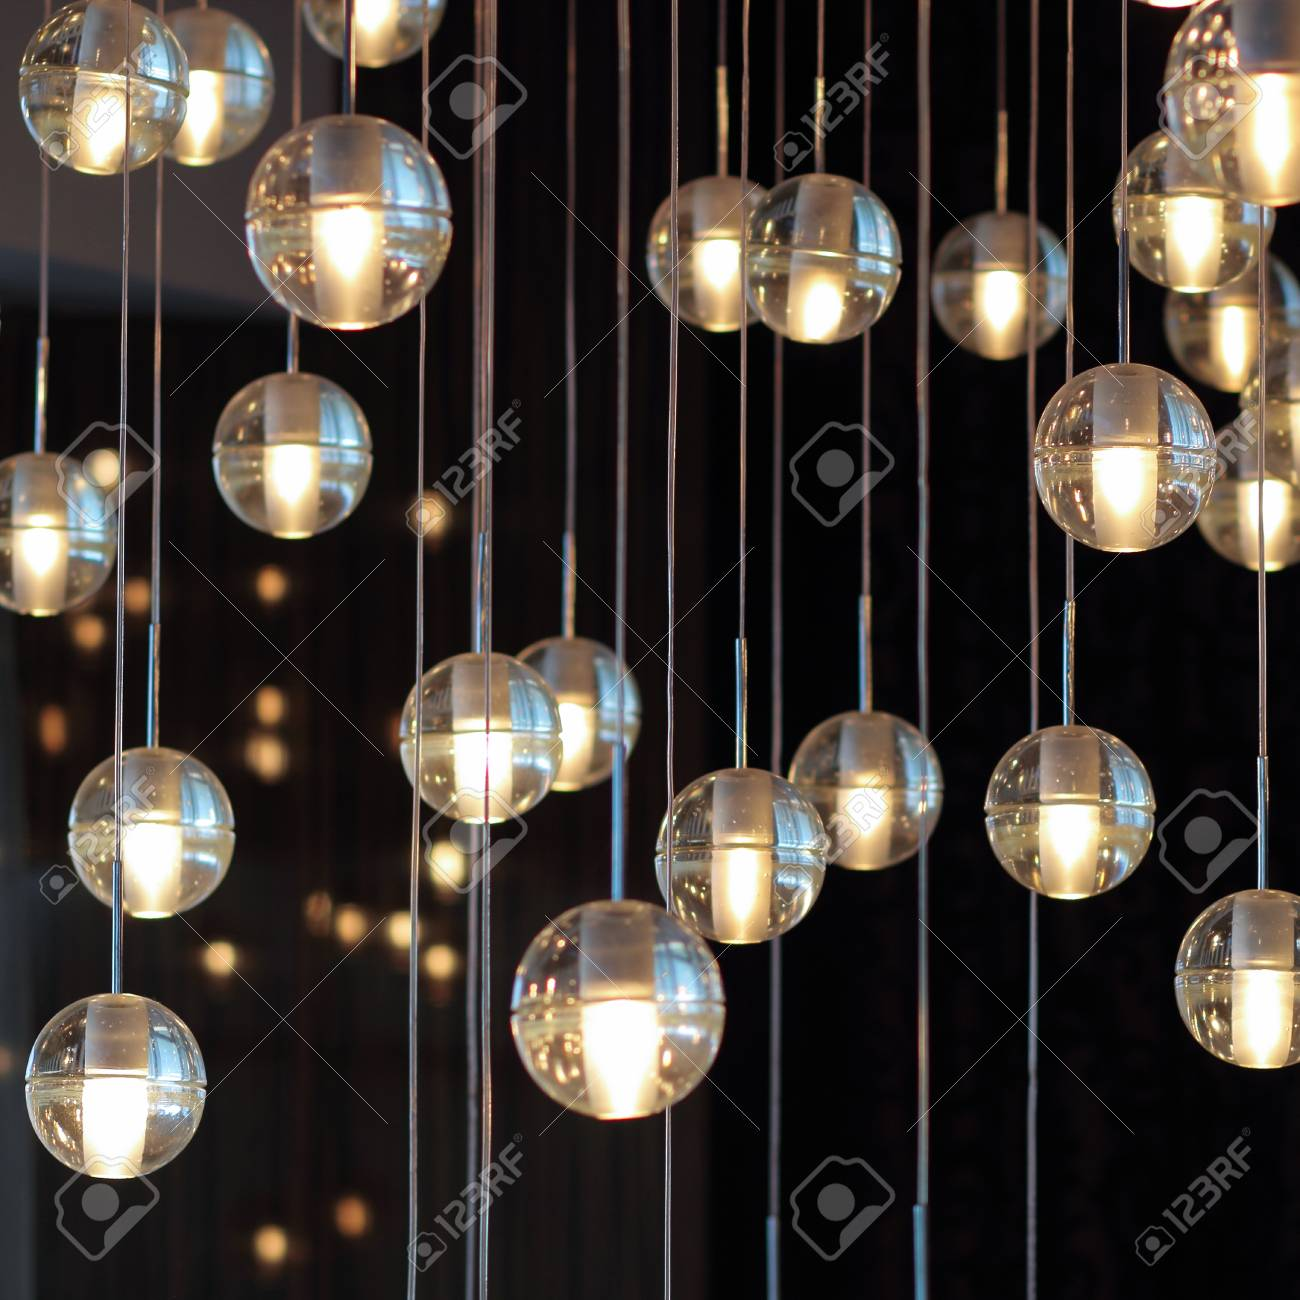 Lighting balls on the chandelier in the lamplight light bulbs lighting balls on the chandelier in the lamplight light bulbs hanging from the ceiling aloadofball Image collections